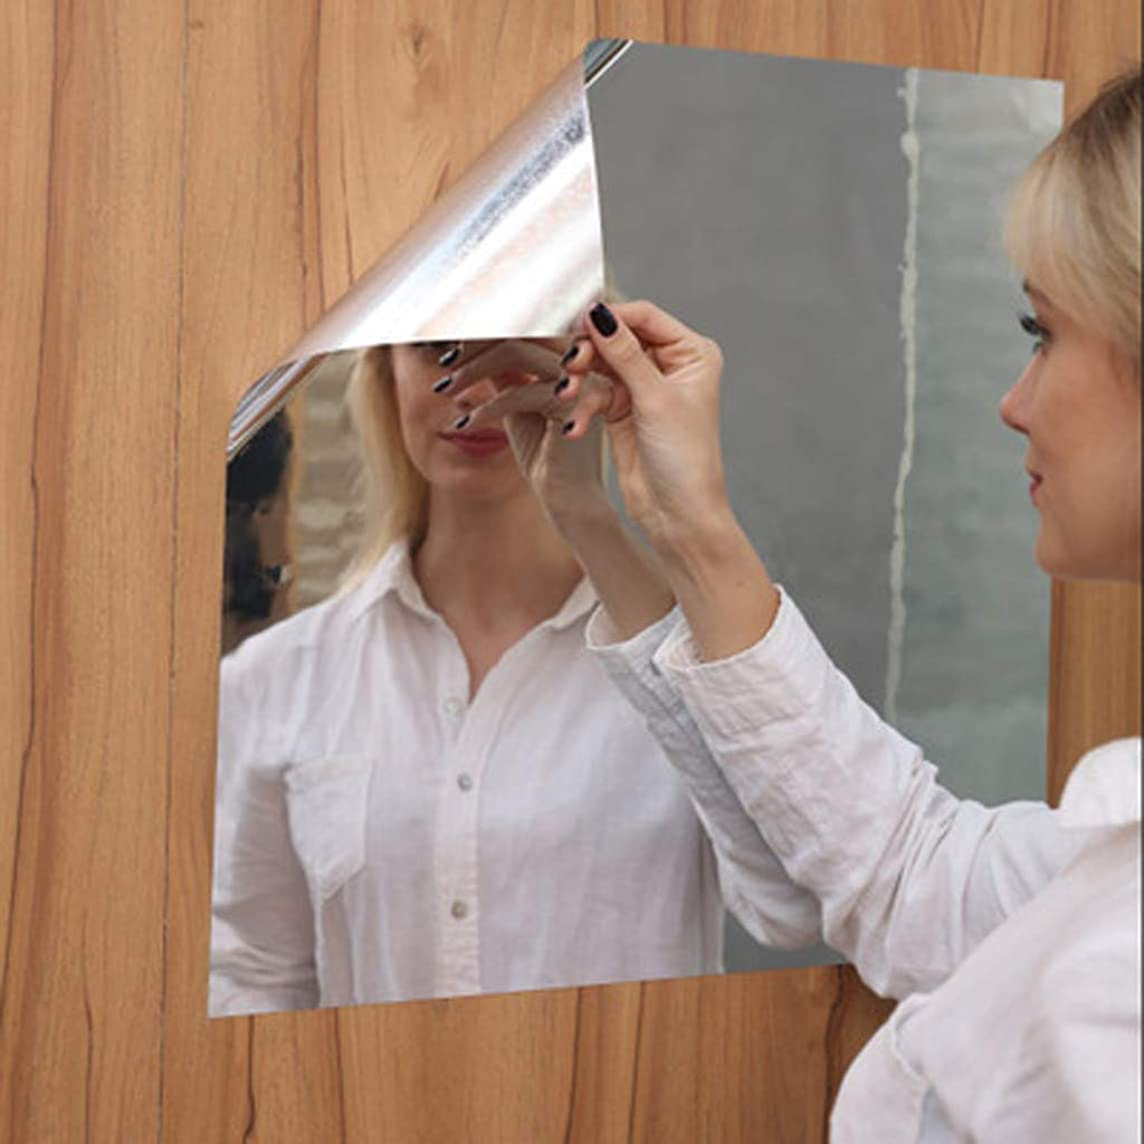 Flexible Mirror Sheets Non Glass,Soft Mirror Mirror Sticker,Mirror Mirror Self Adhesive,Full Body Mirror Practice Haha Wall Stickers for Home Decoration, 19.68 x 39.37 Inches (Silver)